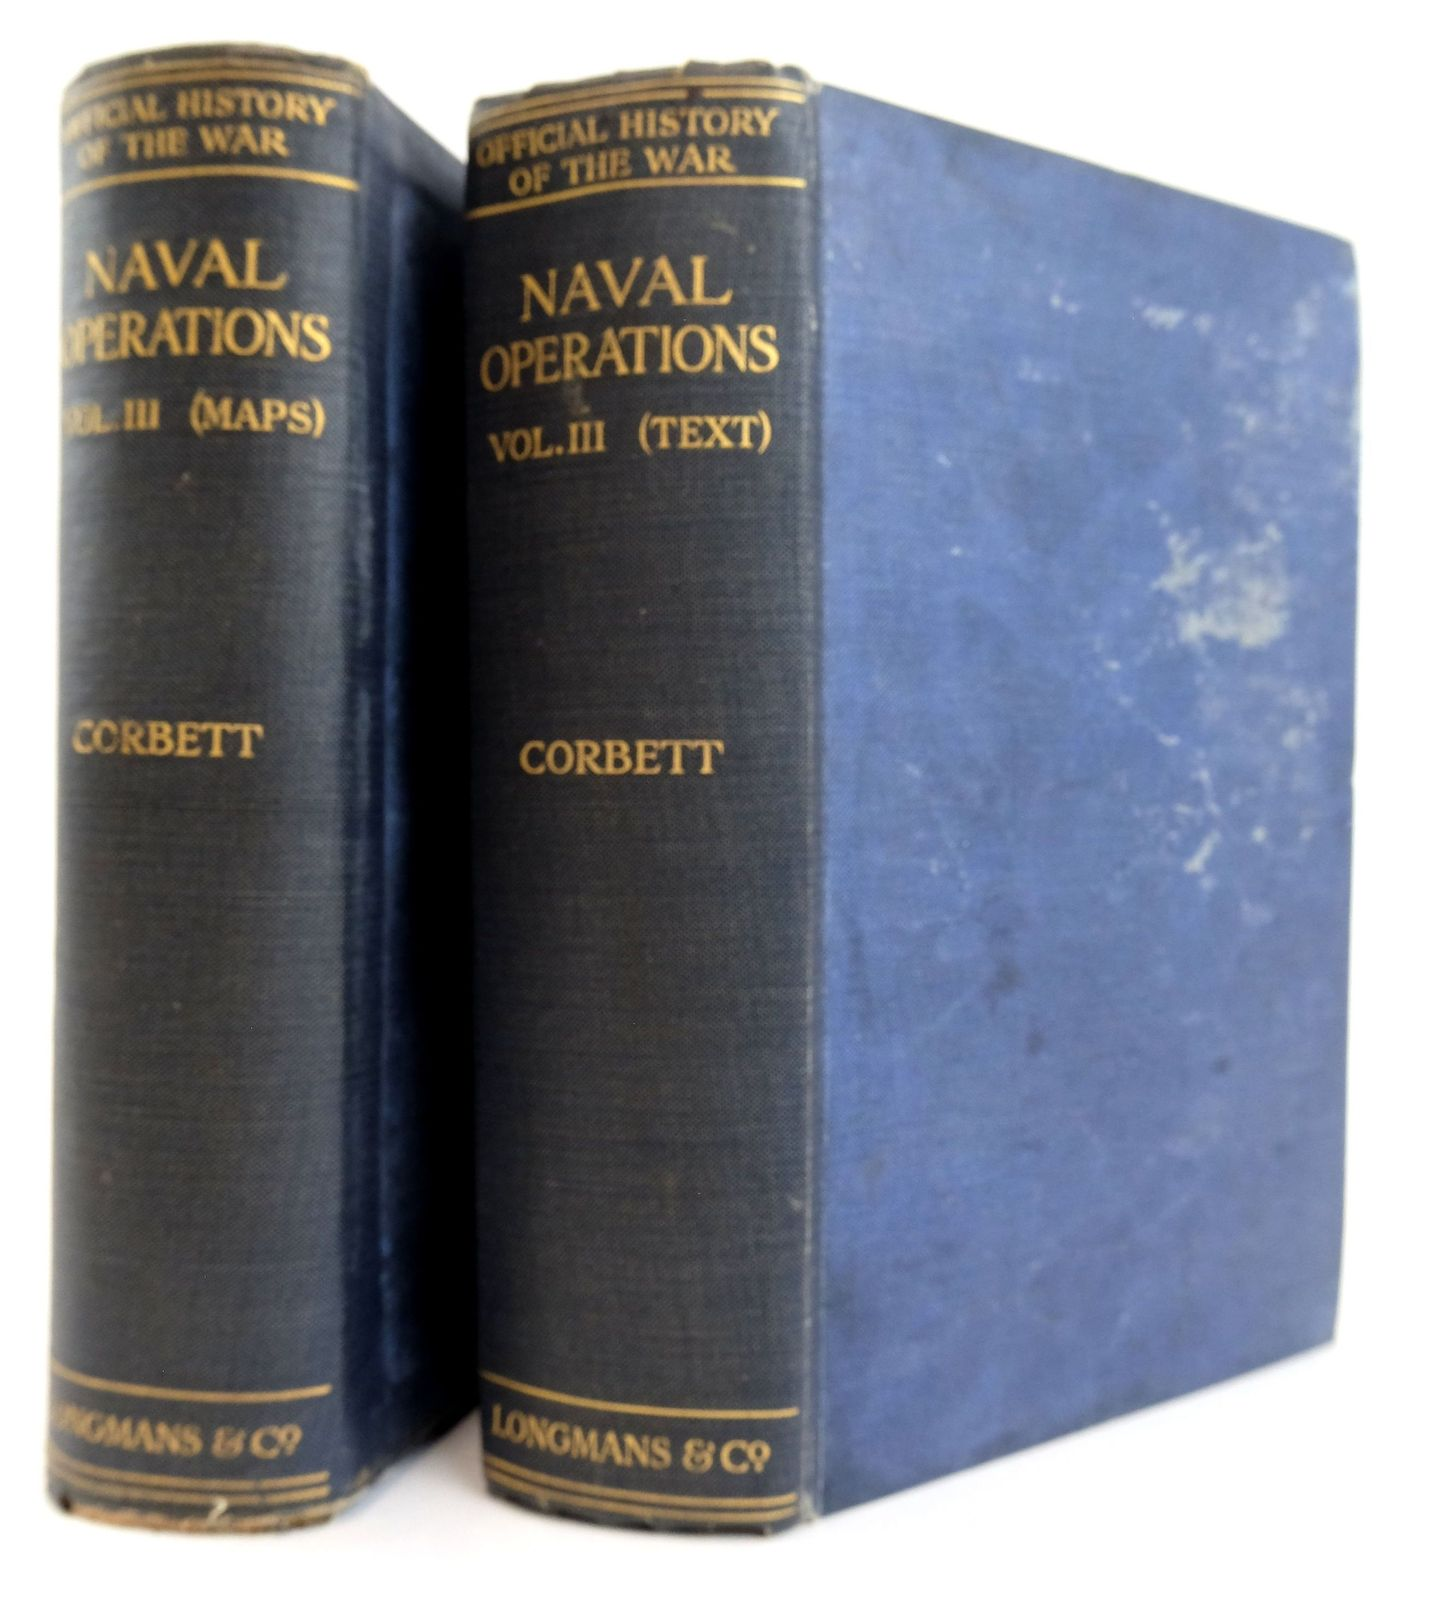 Photo of NAVAL OPERATIONS VOL. III (2 VOLUMES) written by Corbett, Julian S. published by Longmans, Green & Co. (STOCK CODE: 1820022)  for sale by Stella & Rose's Books